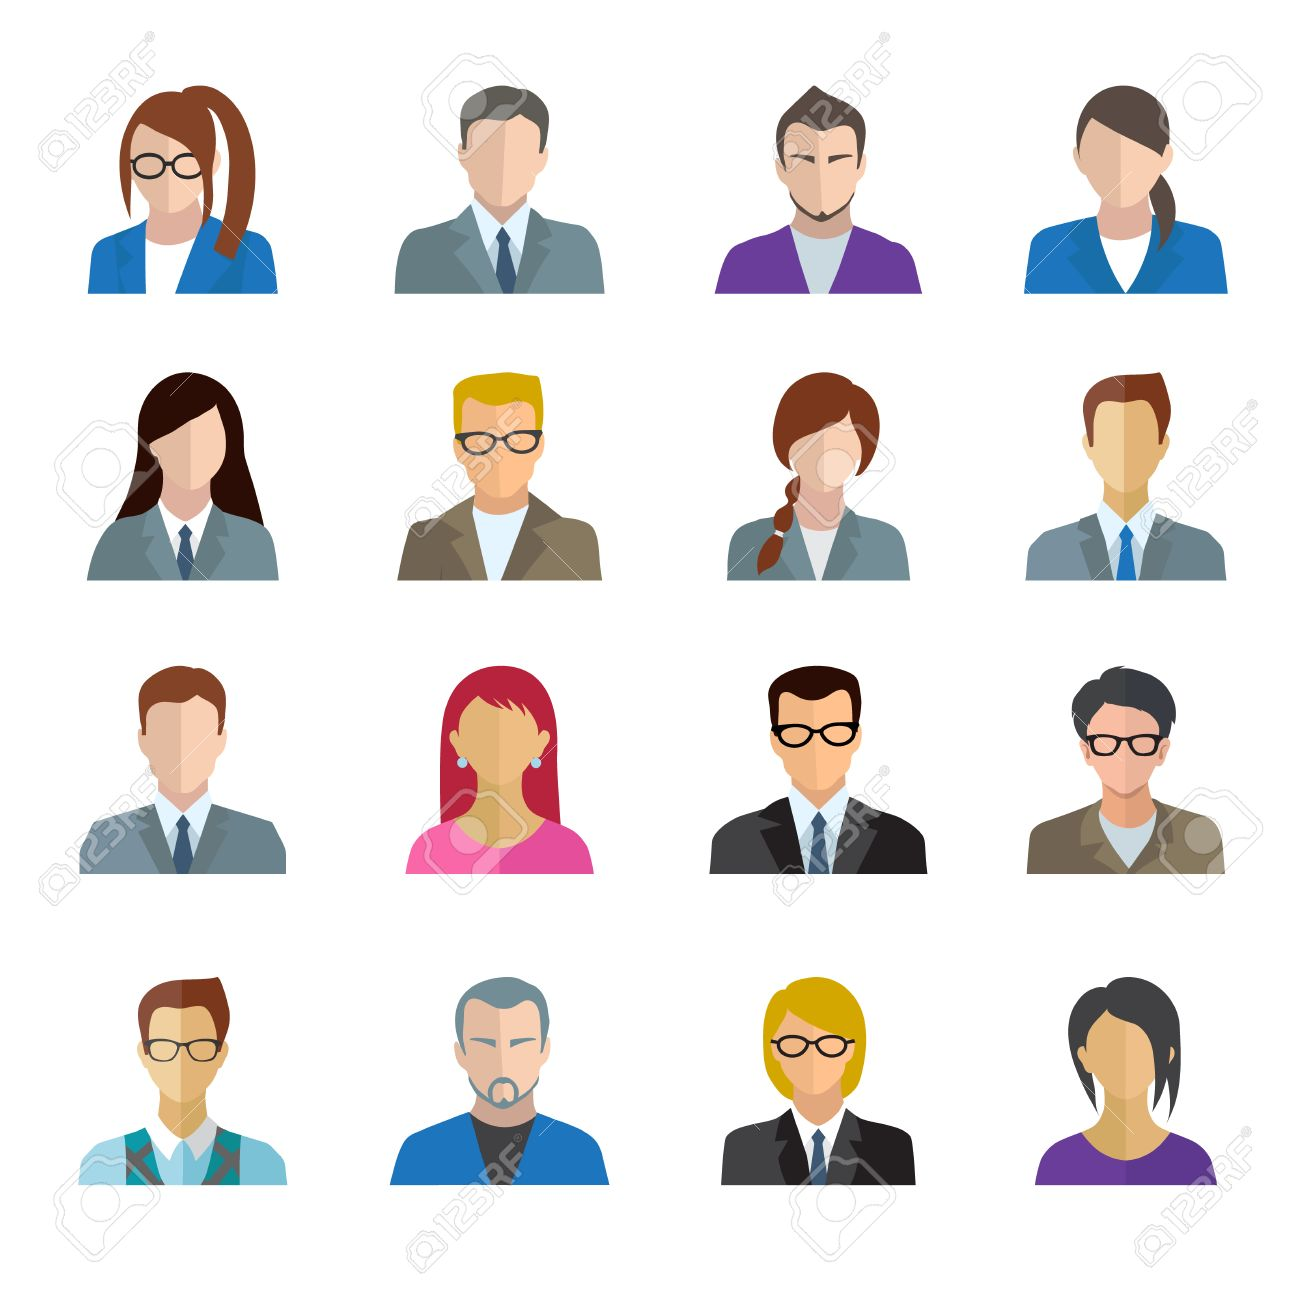 clip royalty free download Staff clipart office personnel. X free clip art